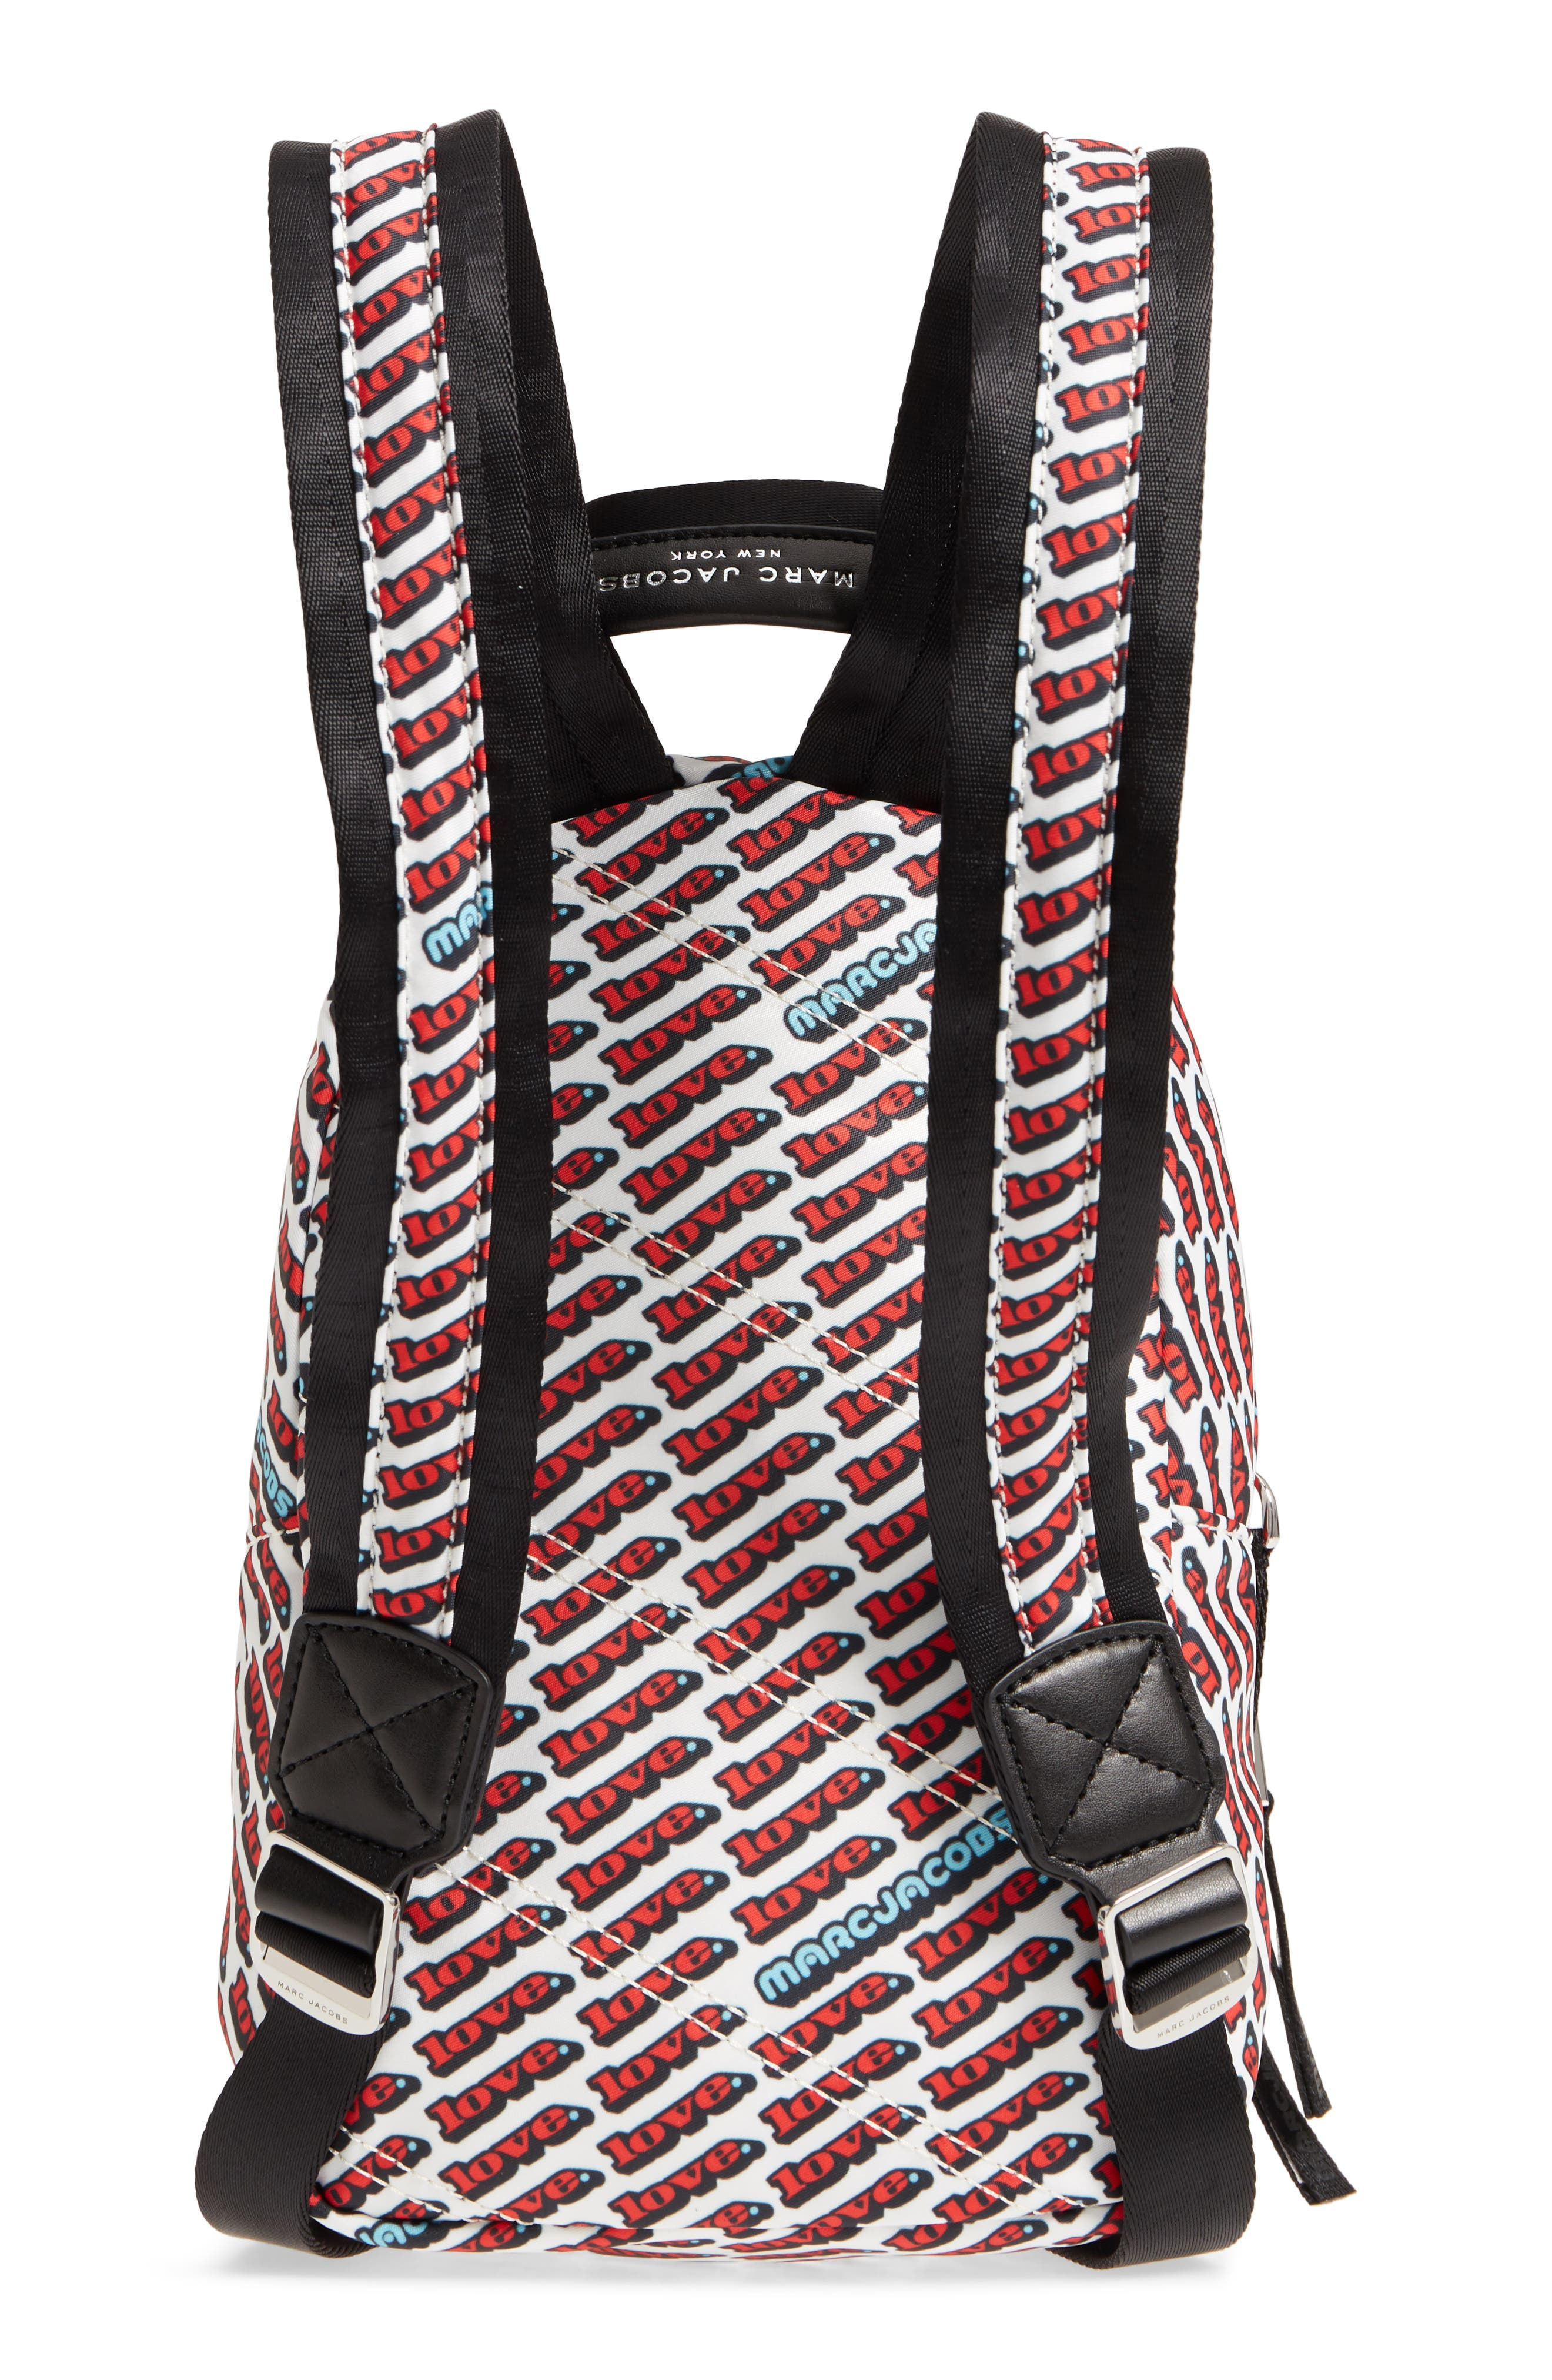 Mini Trek Love Backpack,                             Alternate thumbnail 3, color,                             Red Multi